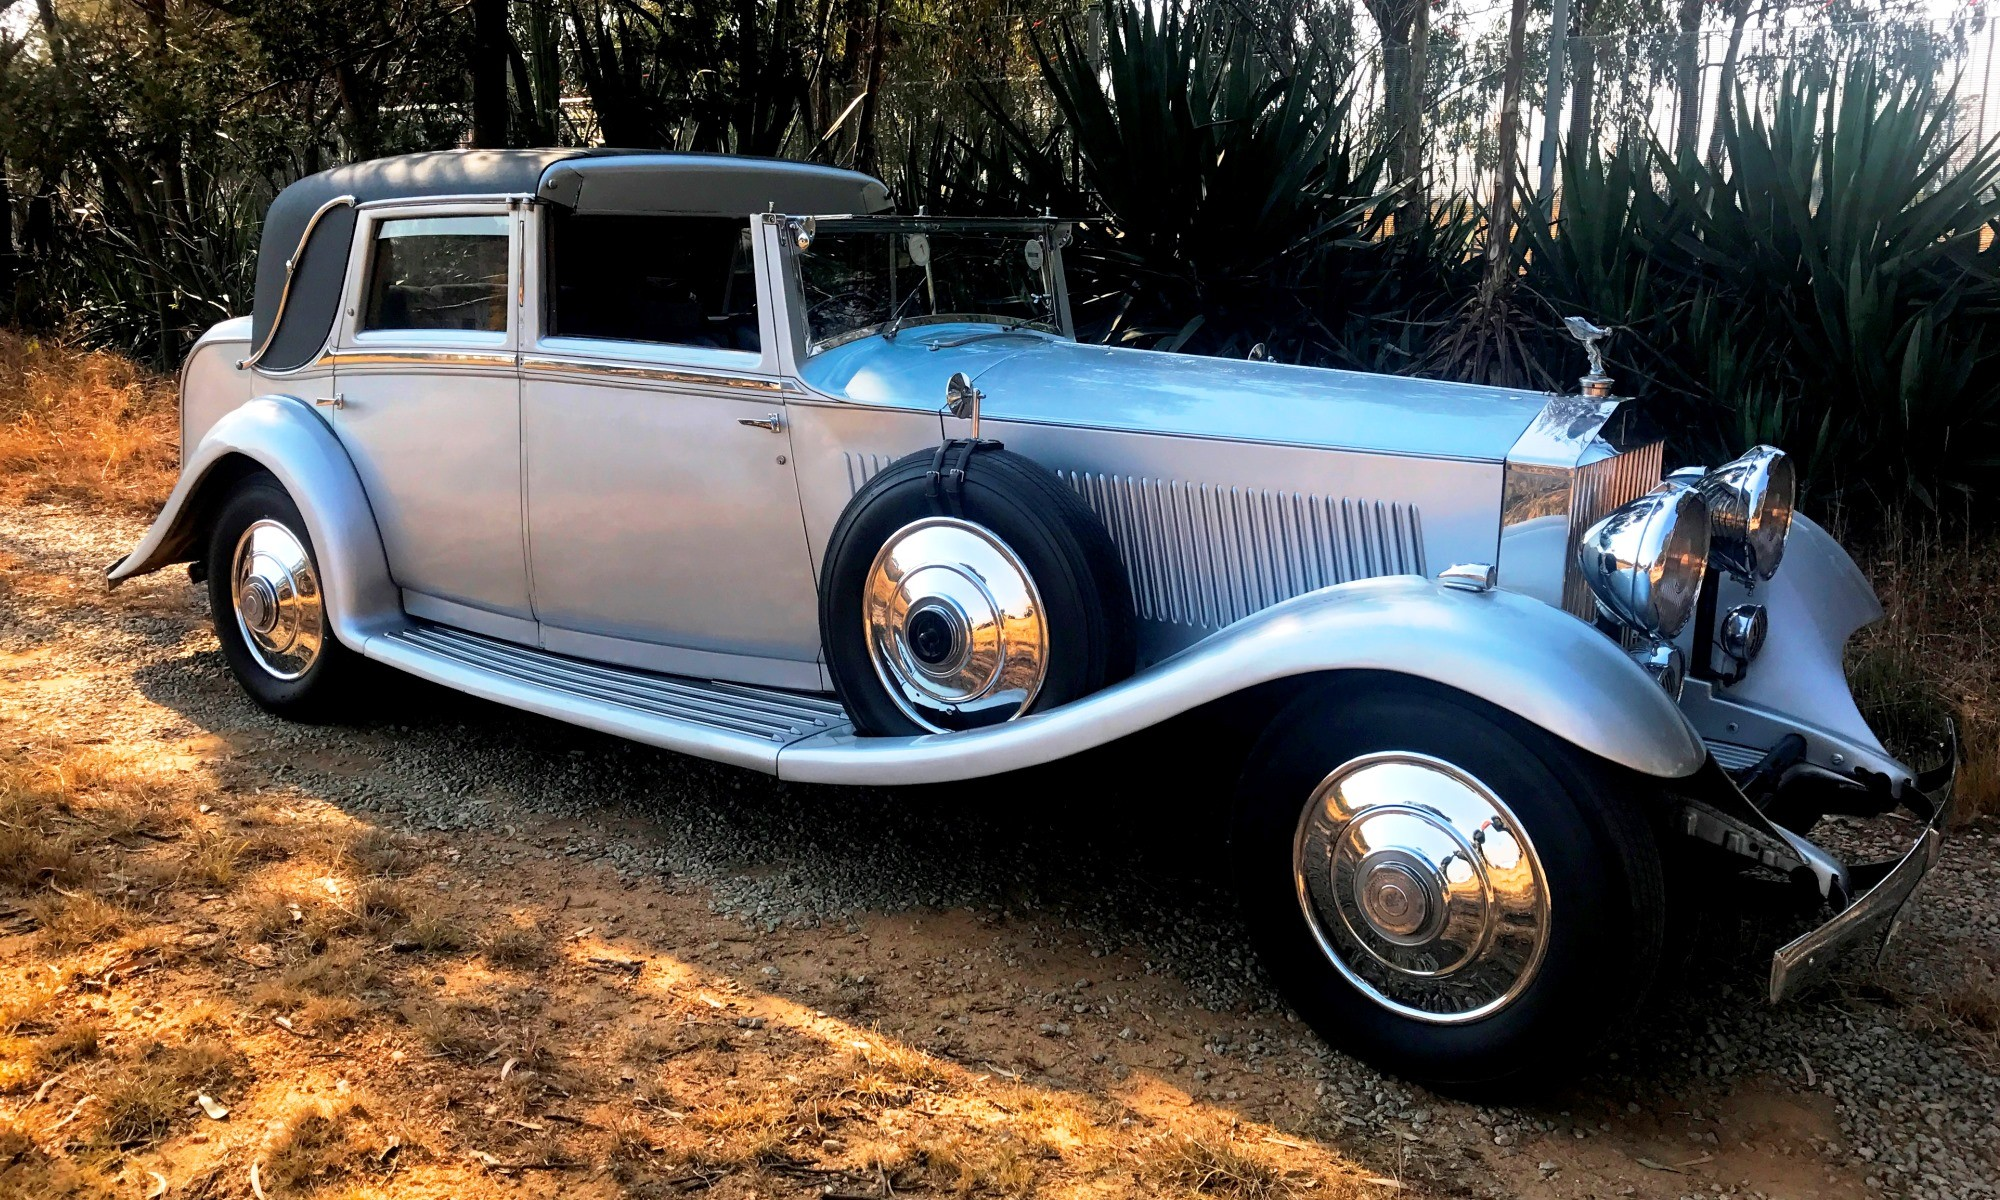 1934 Rolls-Royce Phantom II is one of the oldest cars on show